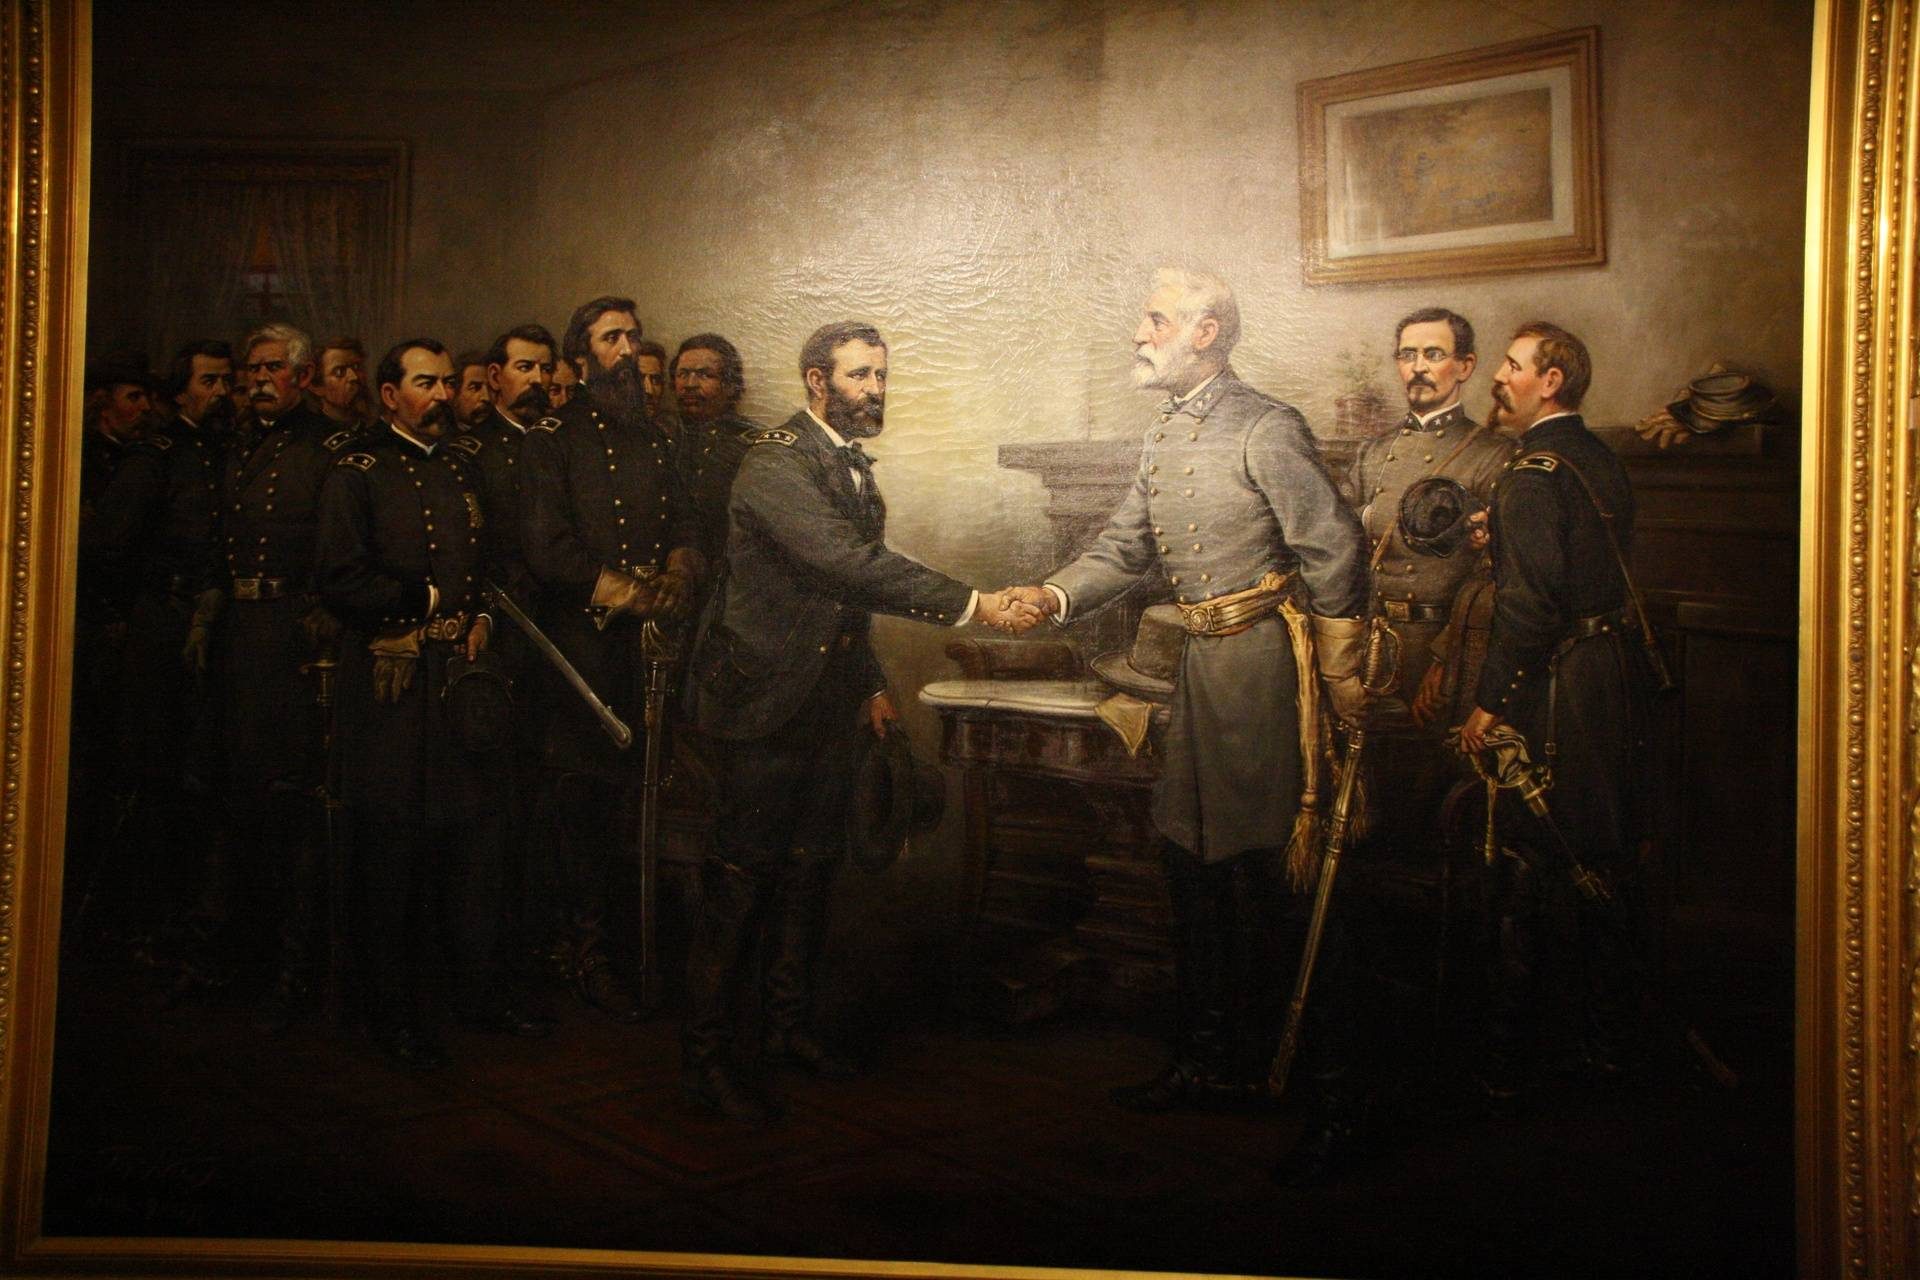 Painting of Lee's surrender to Grant, Galena IL